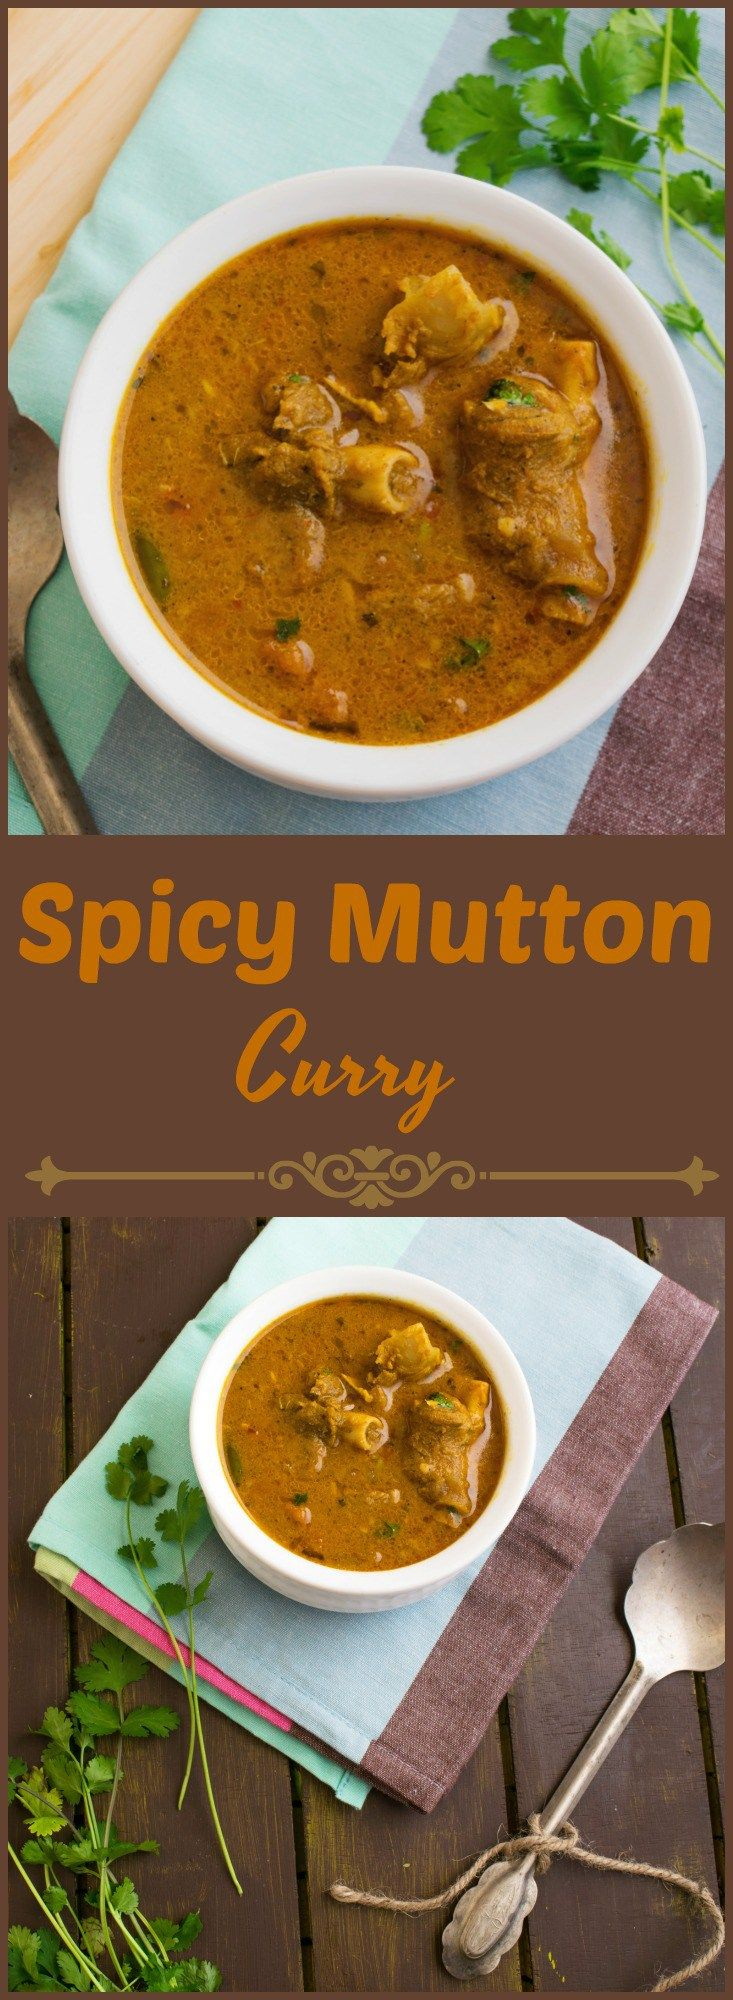 how to make spicy mutton curry